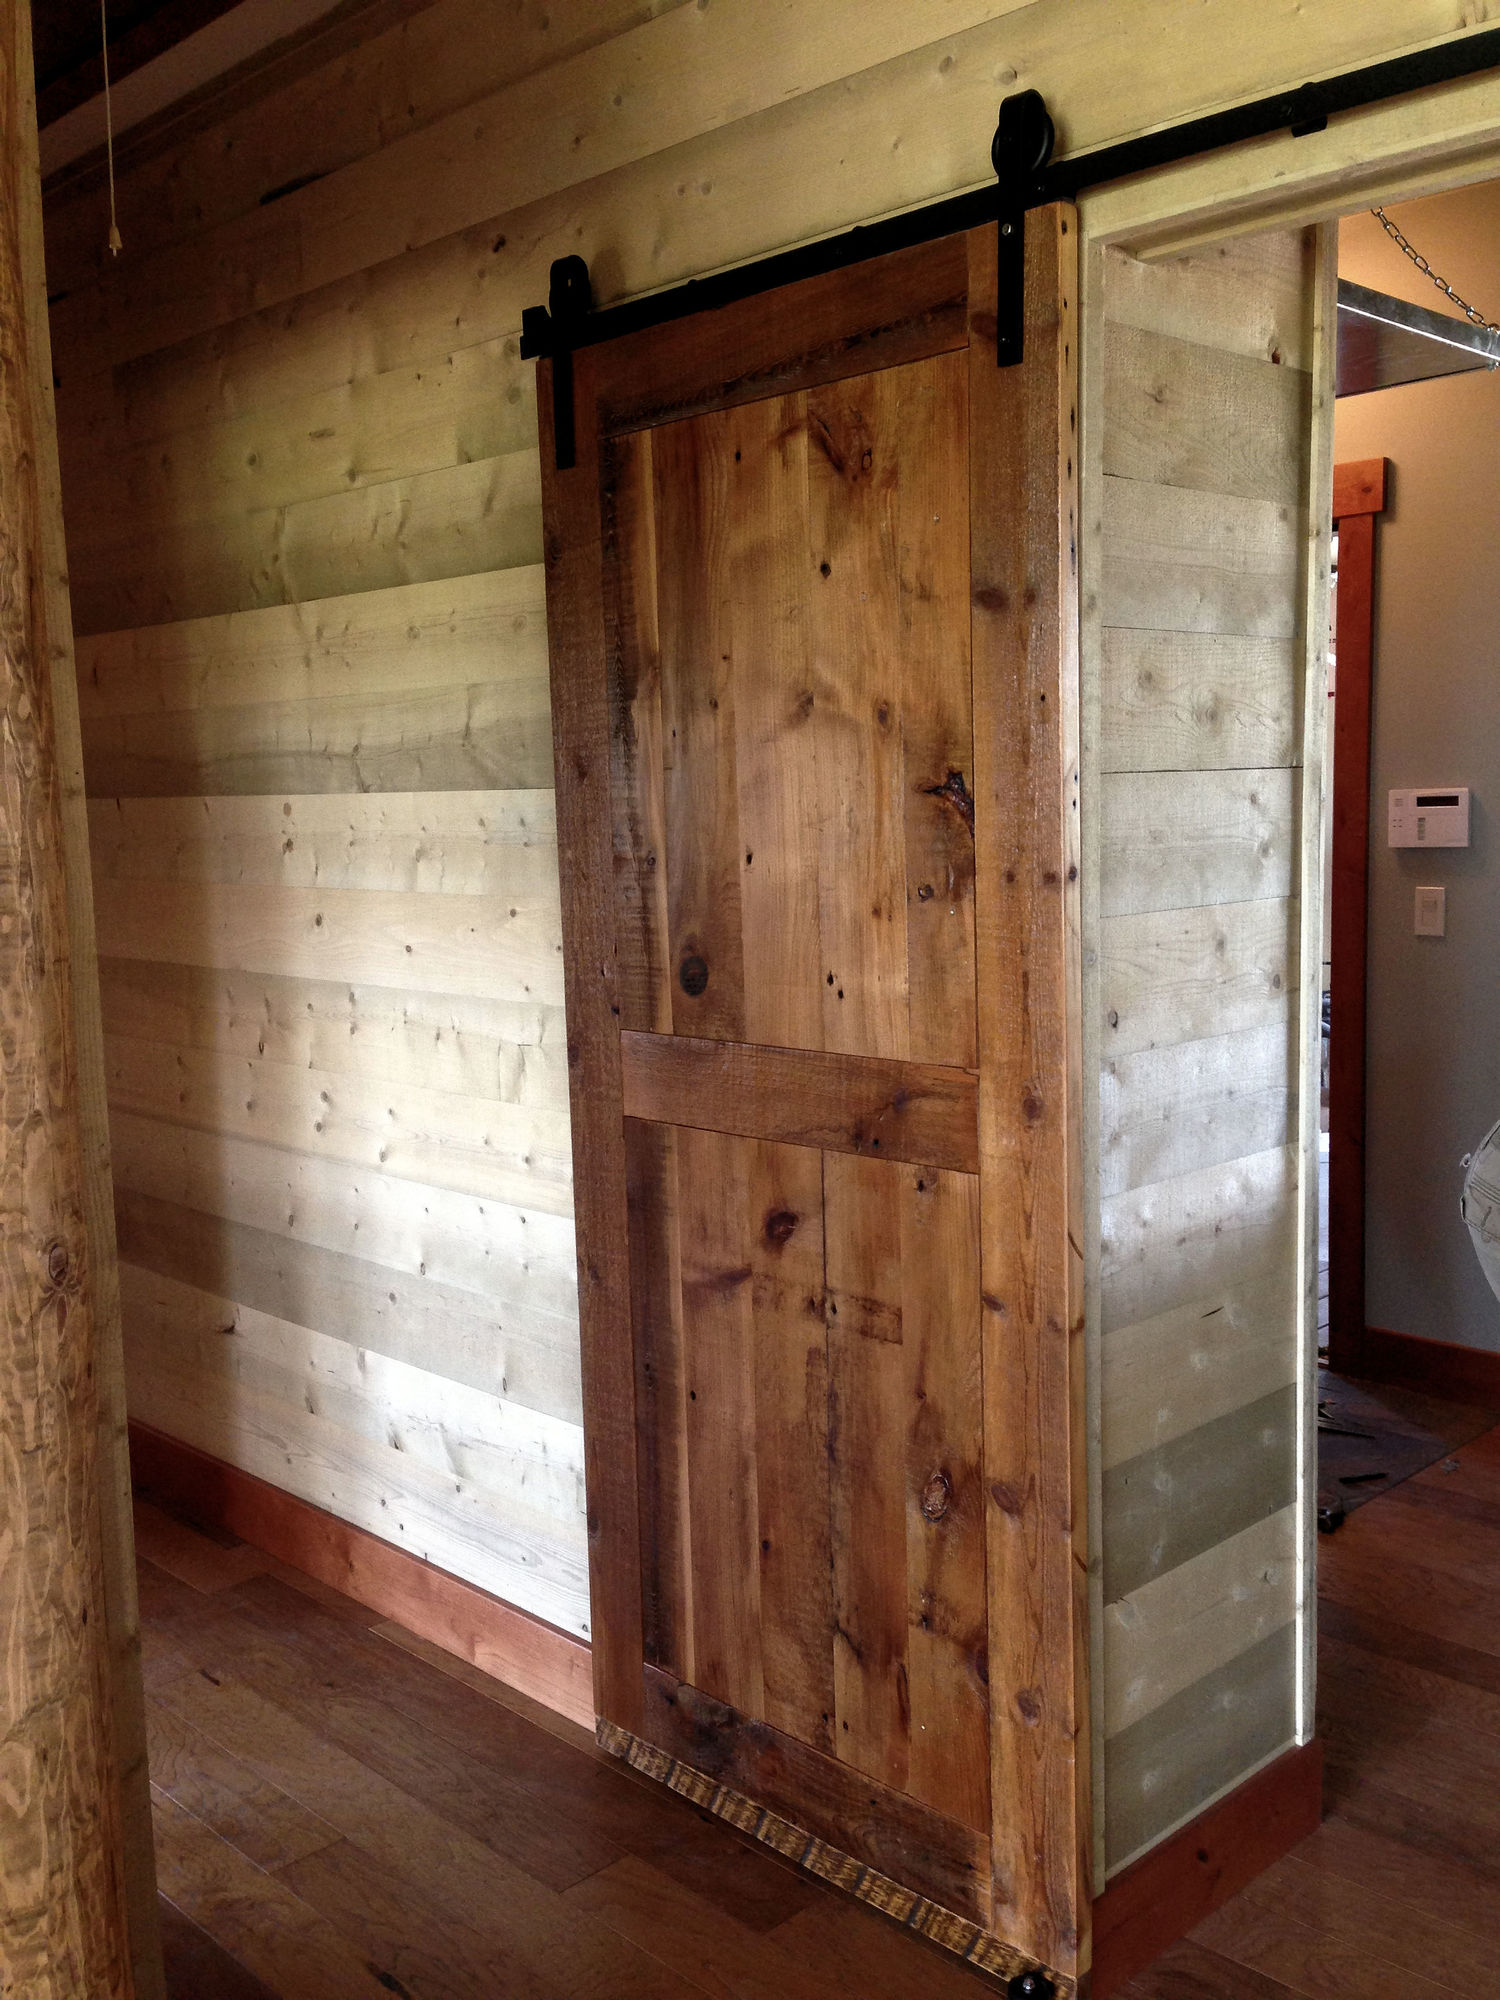 wood s michelles media rustic pattern barns center reclaimed creations doors fama with michelle cabinet portfolio page z barn